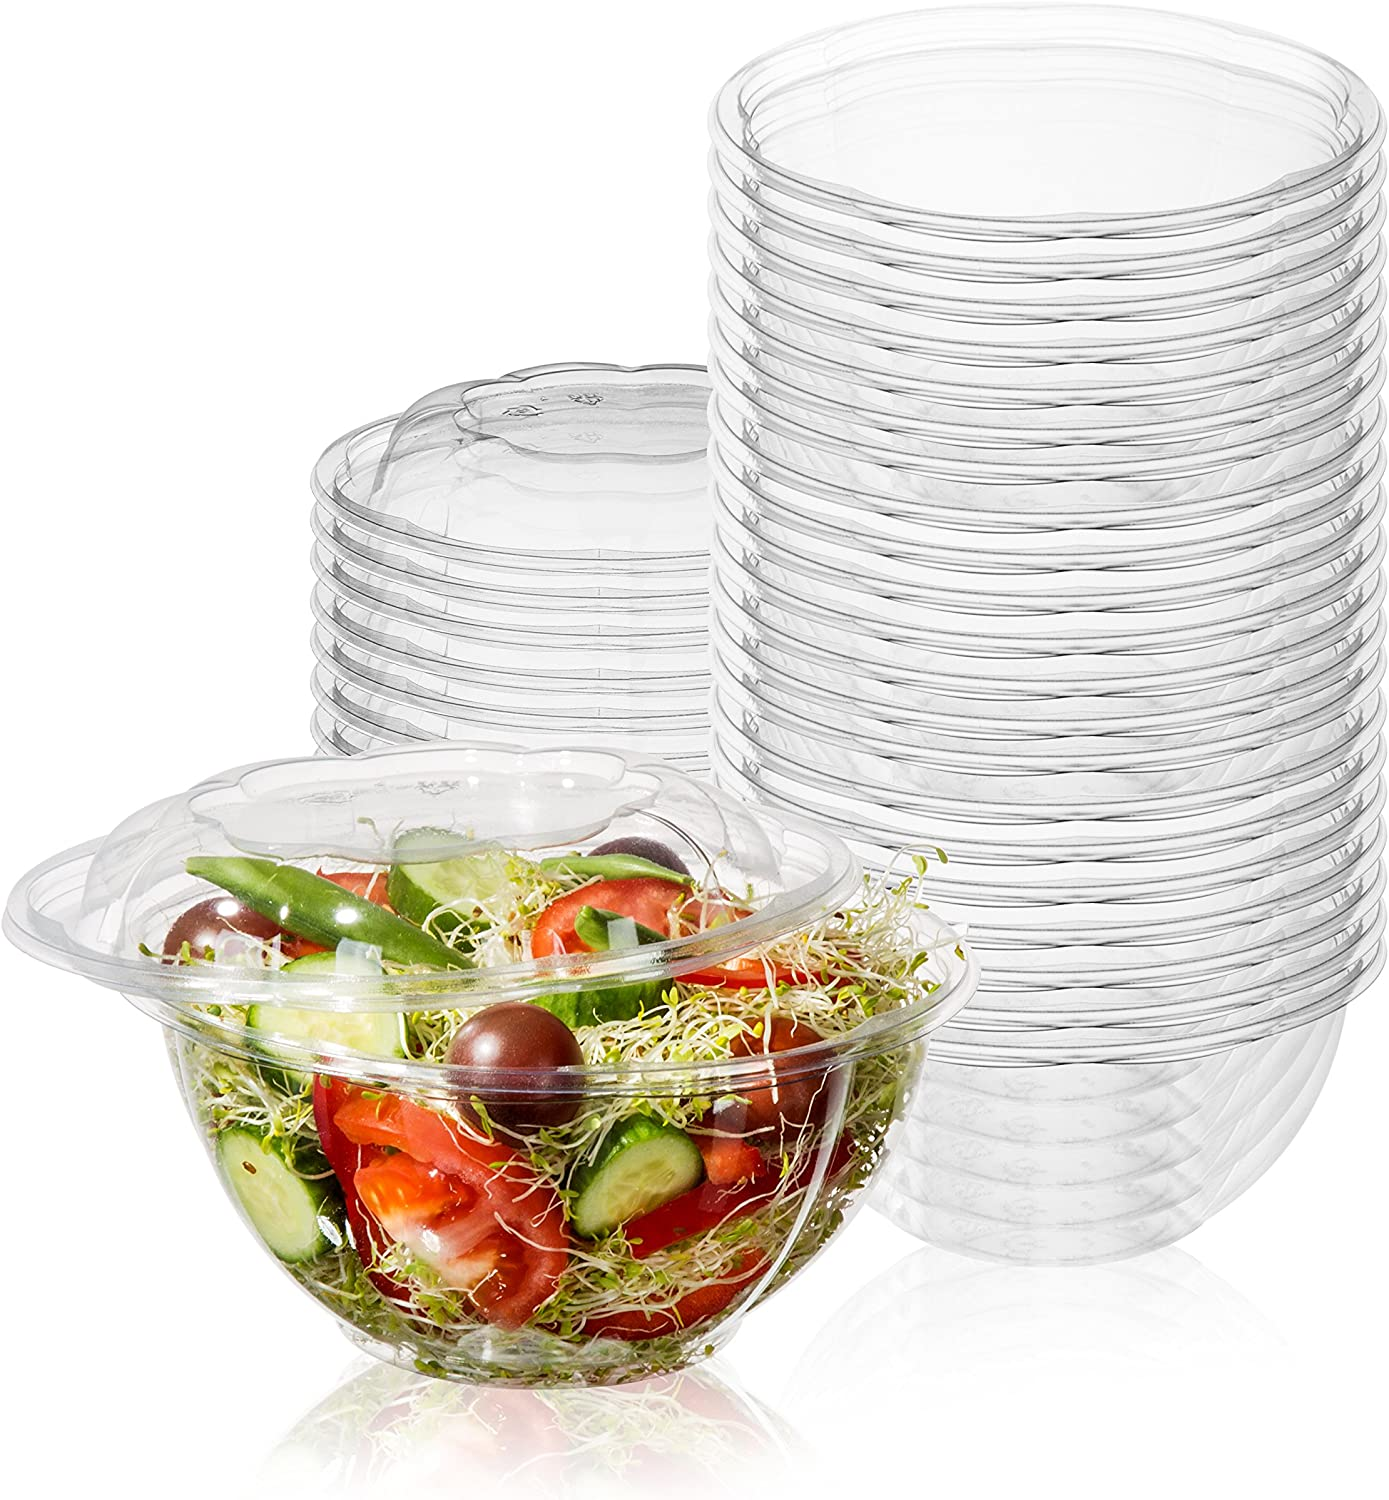 50-Pack 32oz Plastic Disposable Salad Bowls with Lids - Eco-Friendly Clear Food Containers - Extra-Thick Materials - Portable Serving Bowl Set to Pack Lunch - Super Strong Seal To Preserve Freshness